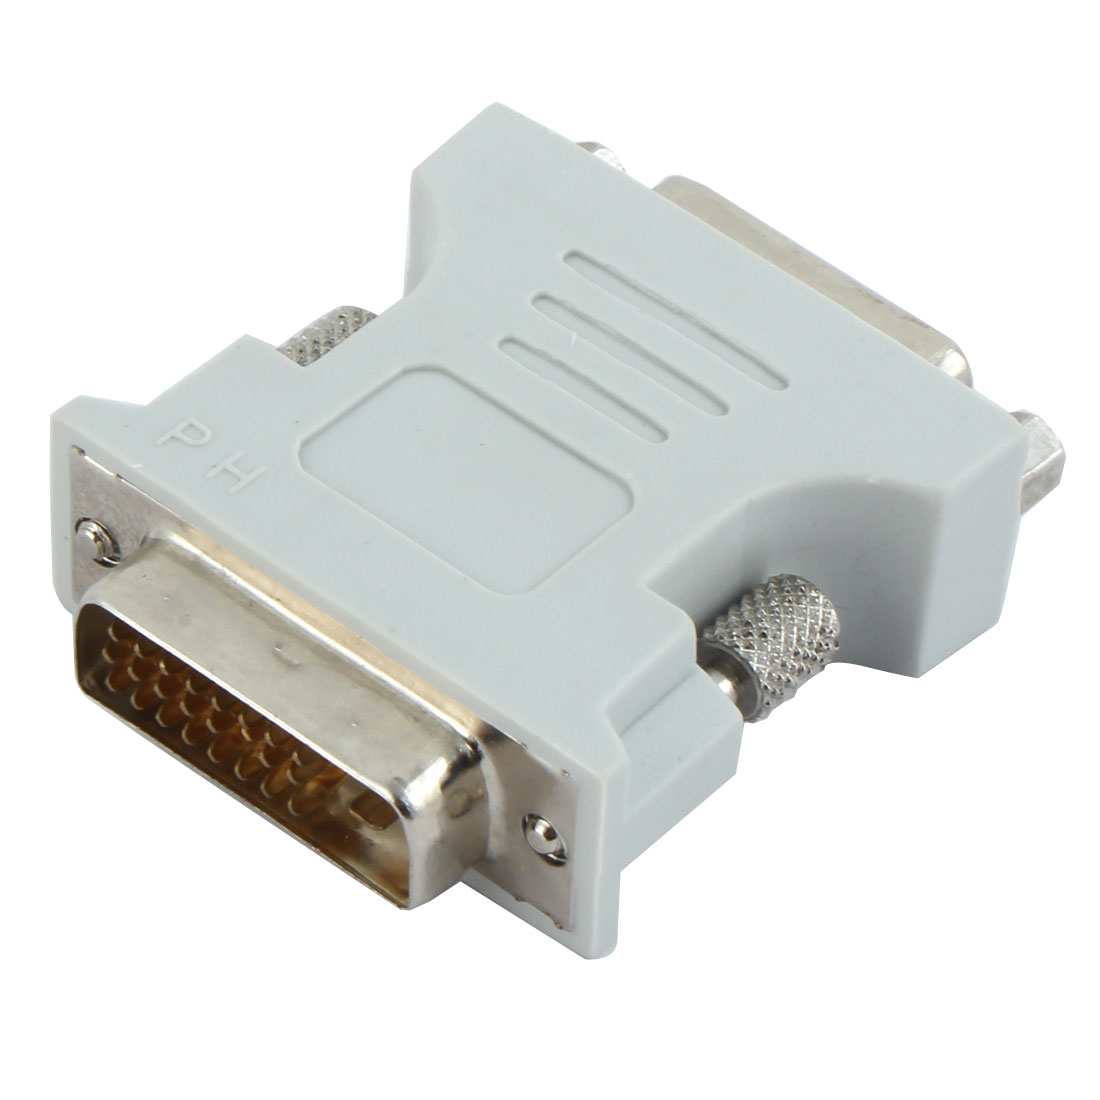 DVI-D 24+1 Male to DVI-I 24+5 Female PC Adapter Converter